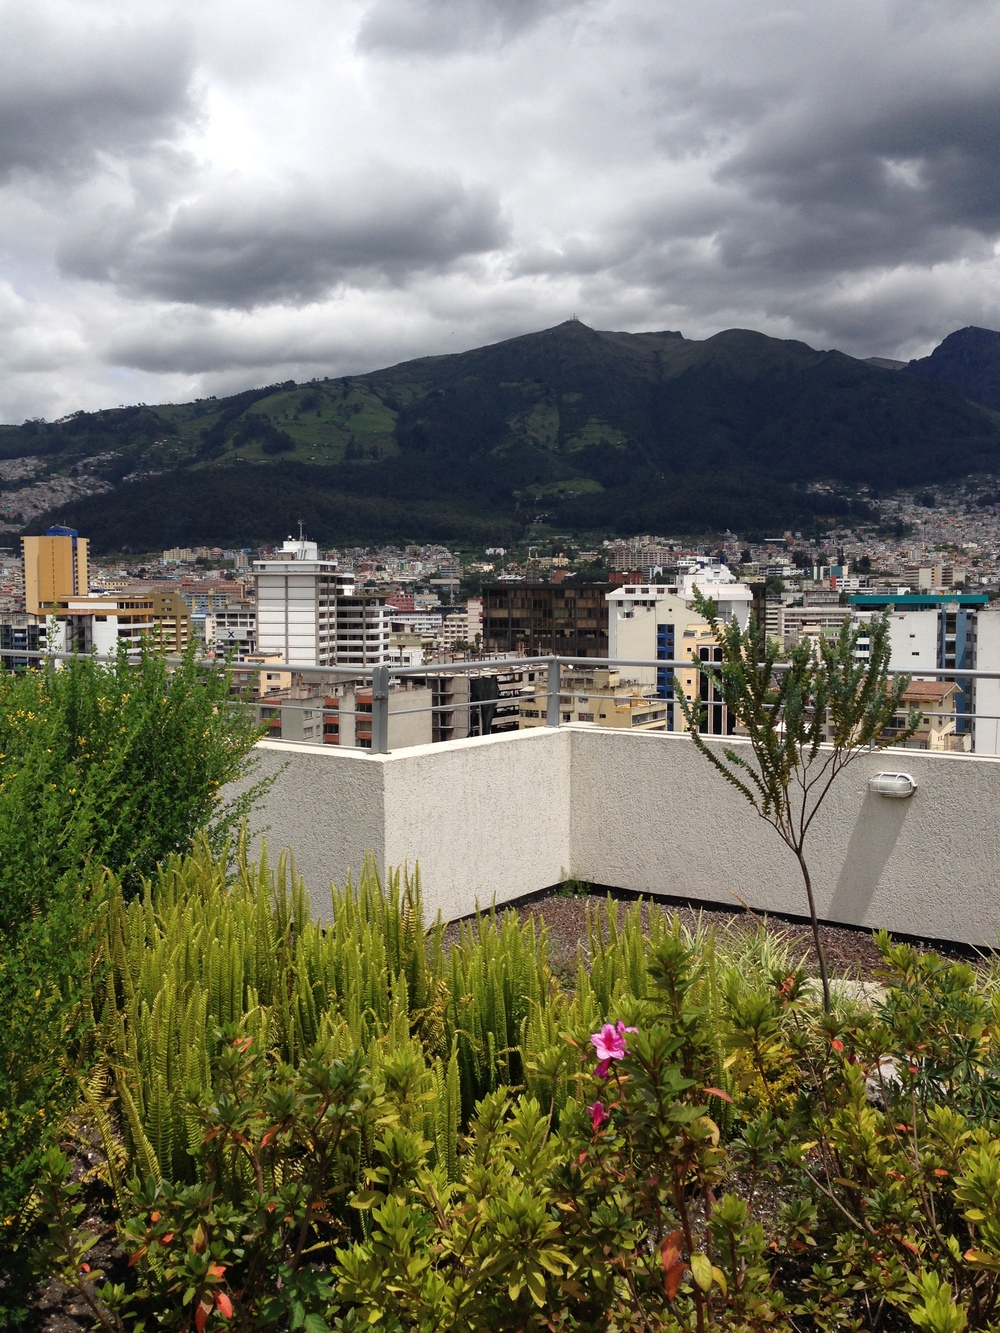 exploring the terrace of the building - looking over Quito.